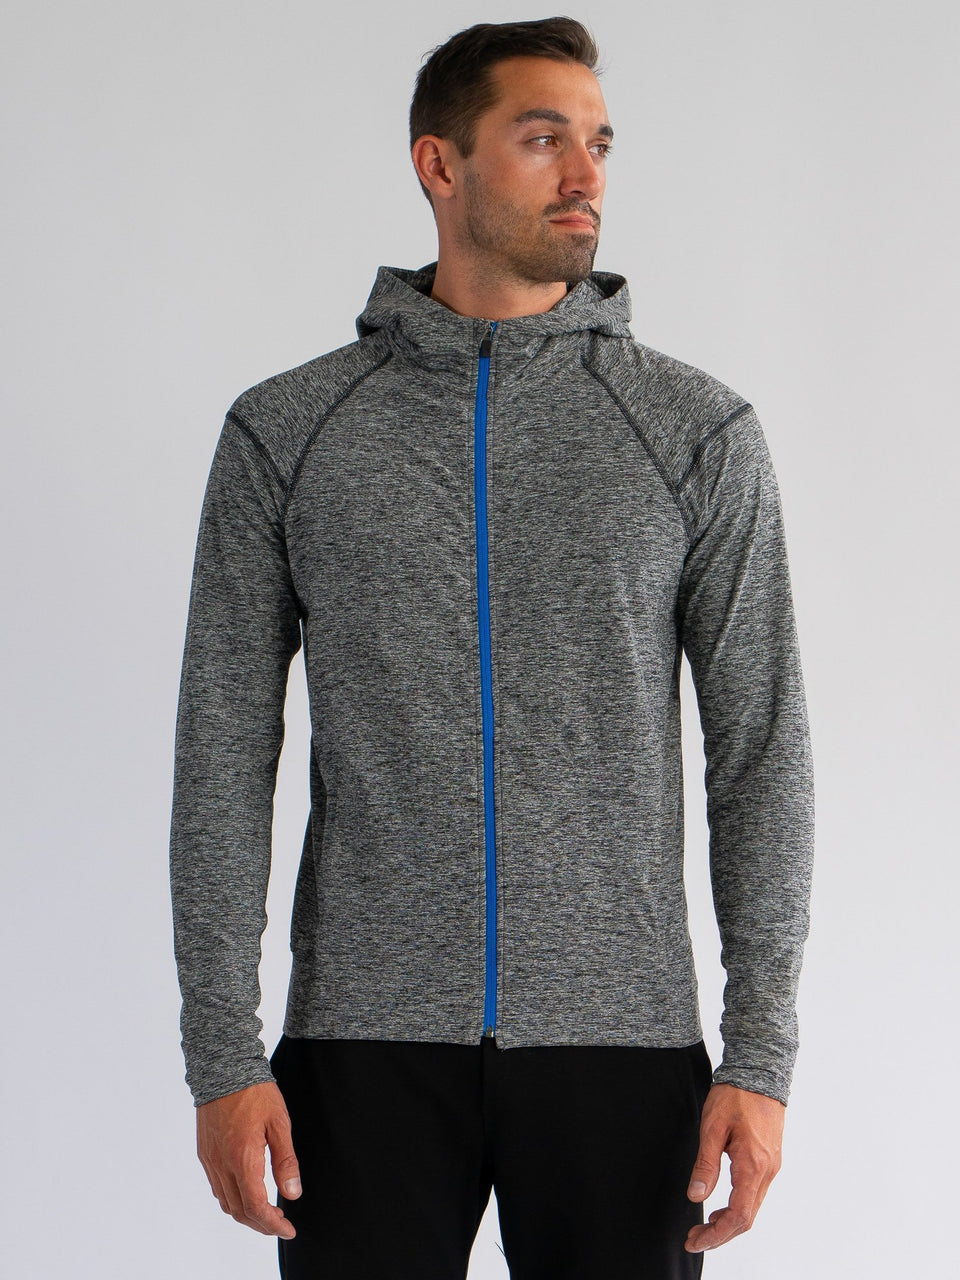 425 Full Zip - XXL - SODO Apparel - Limited Inventory